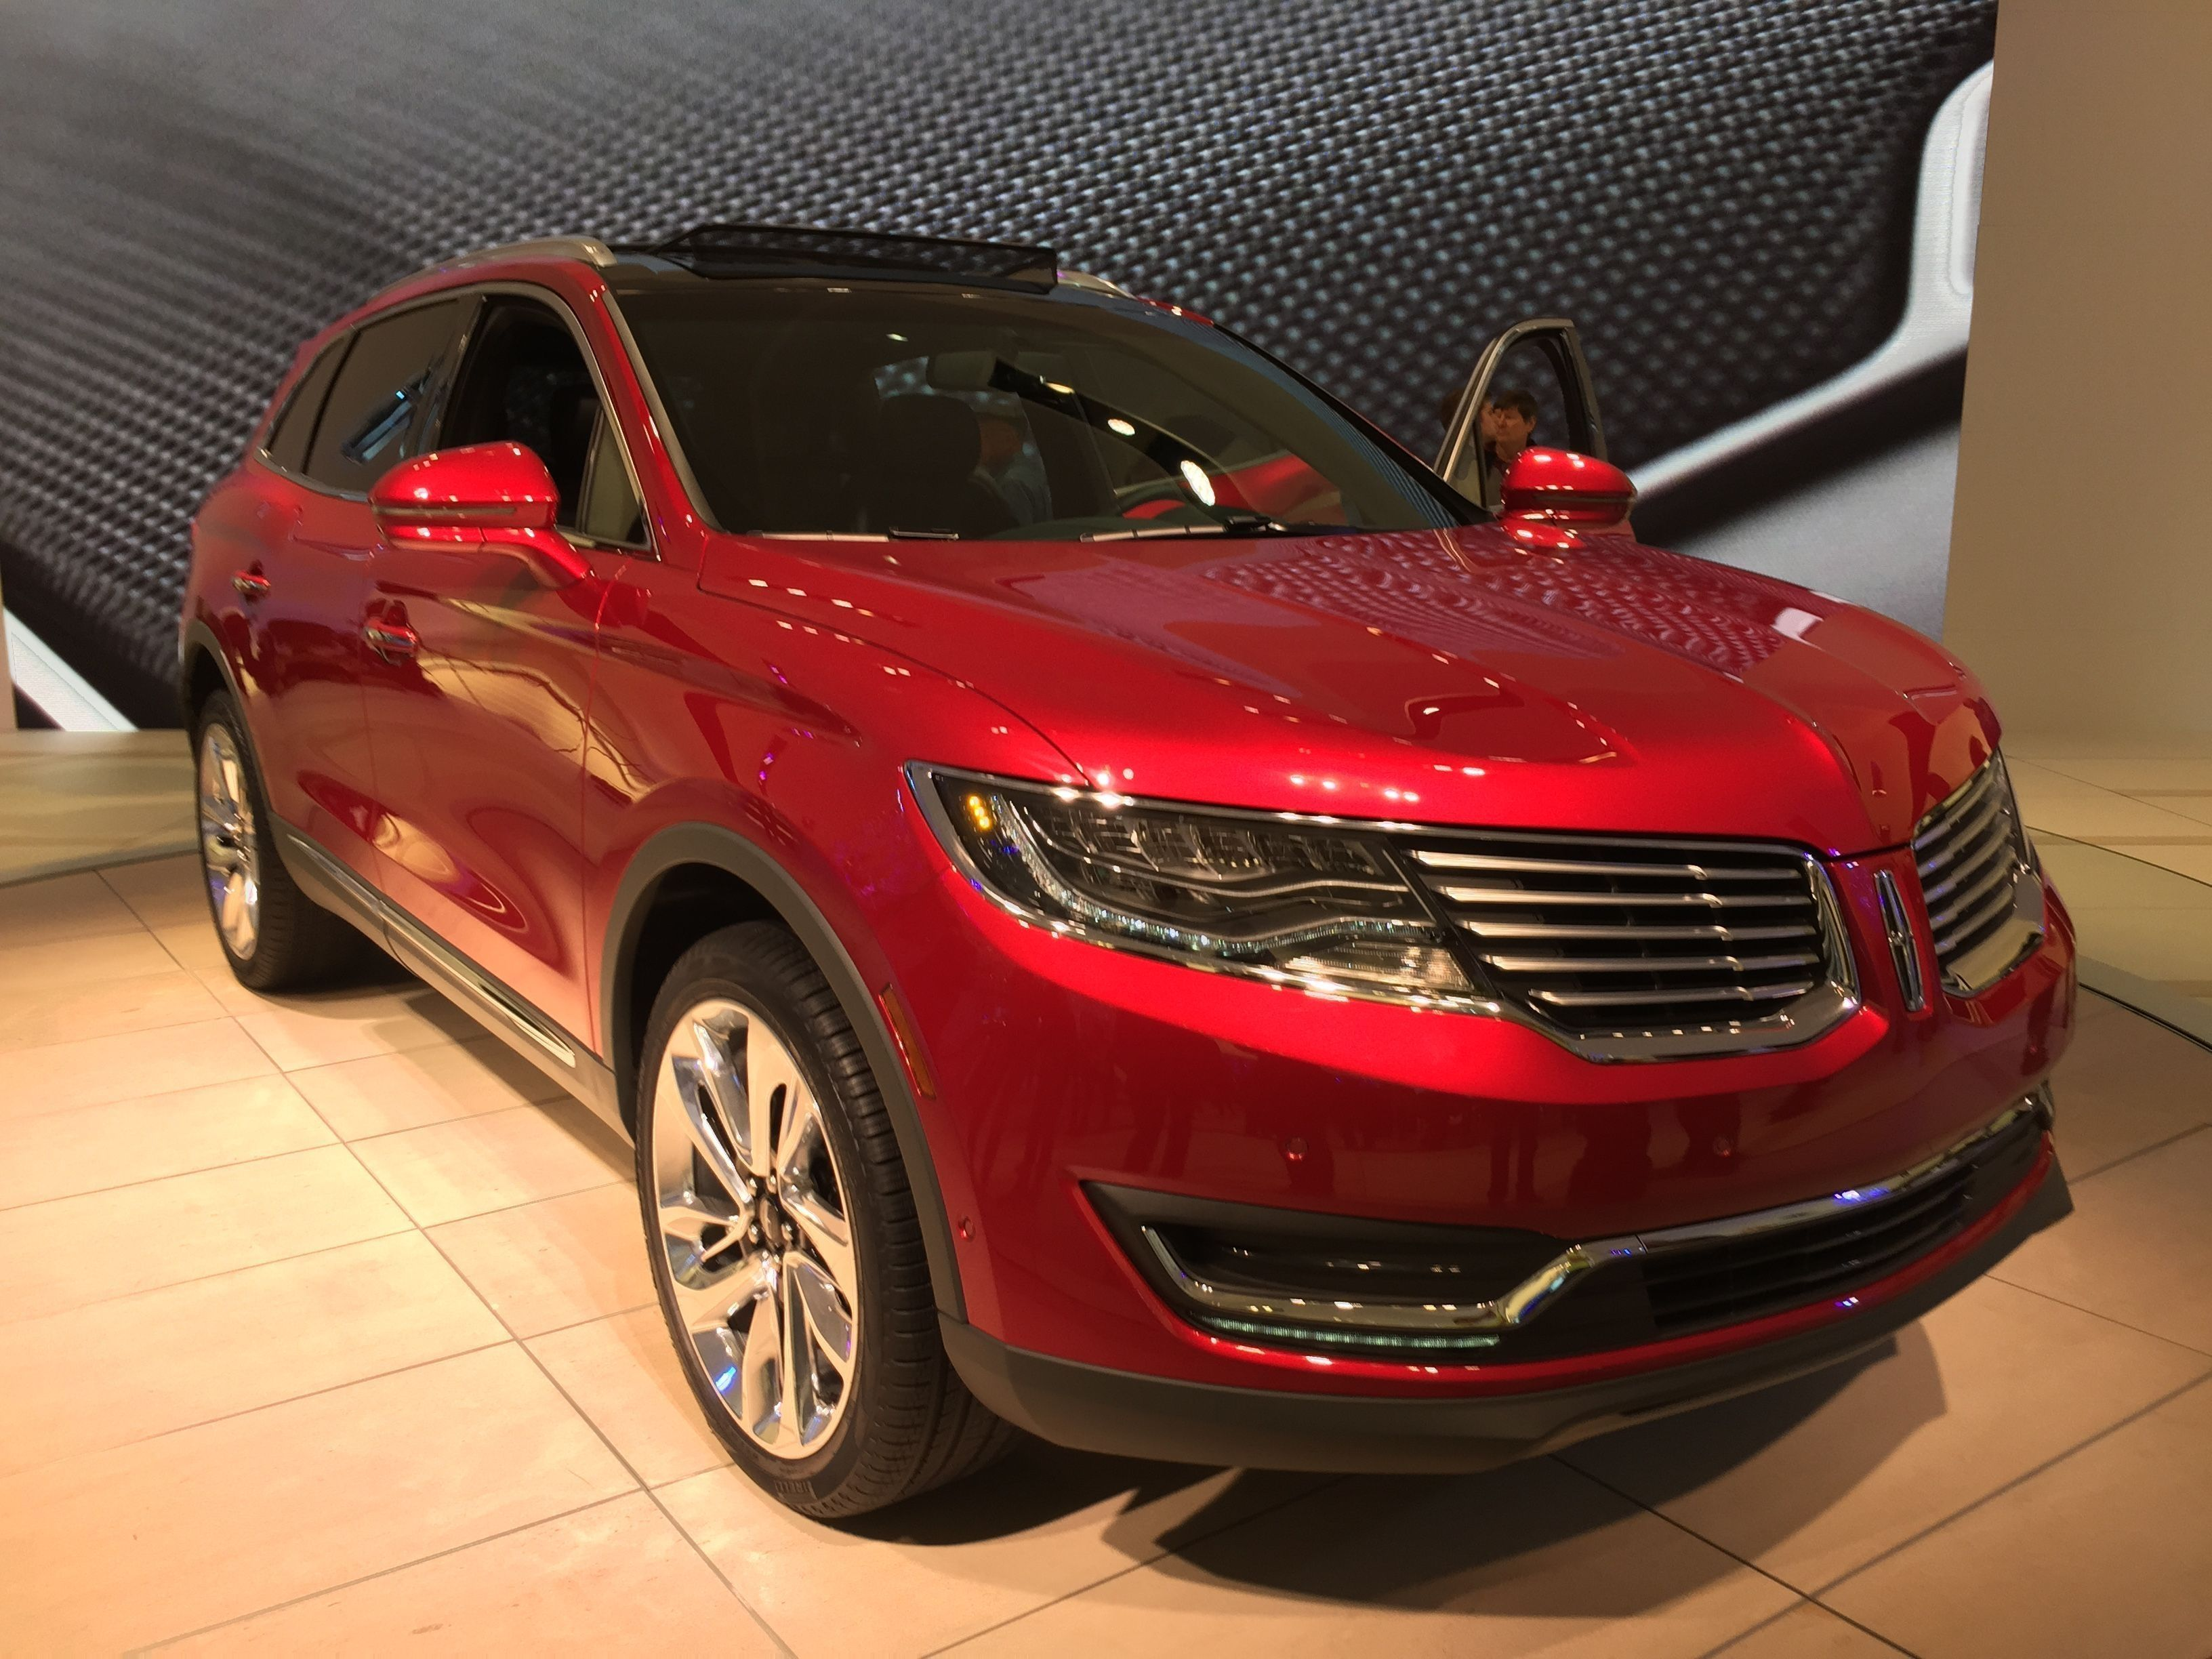 sale mkt for awd img mkx listing in cars lincoln used buds auto